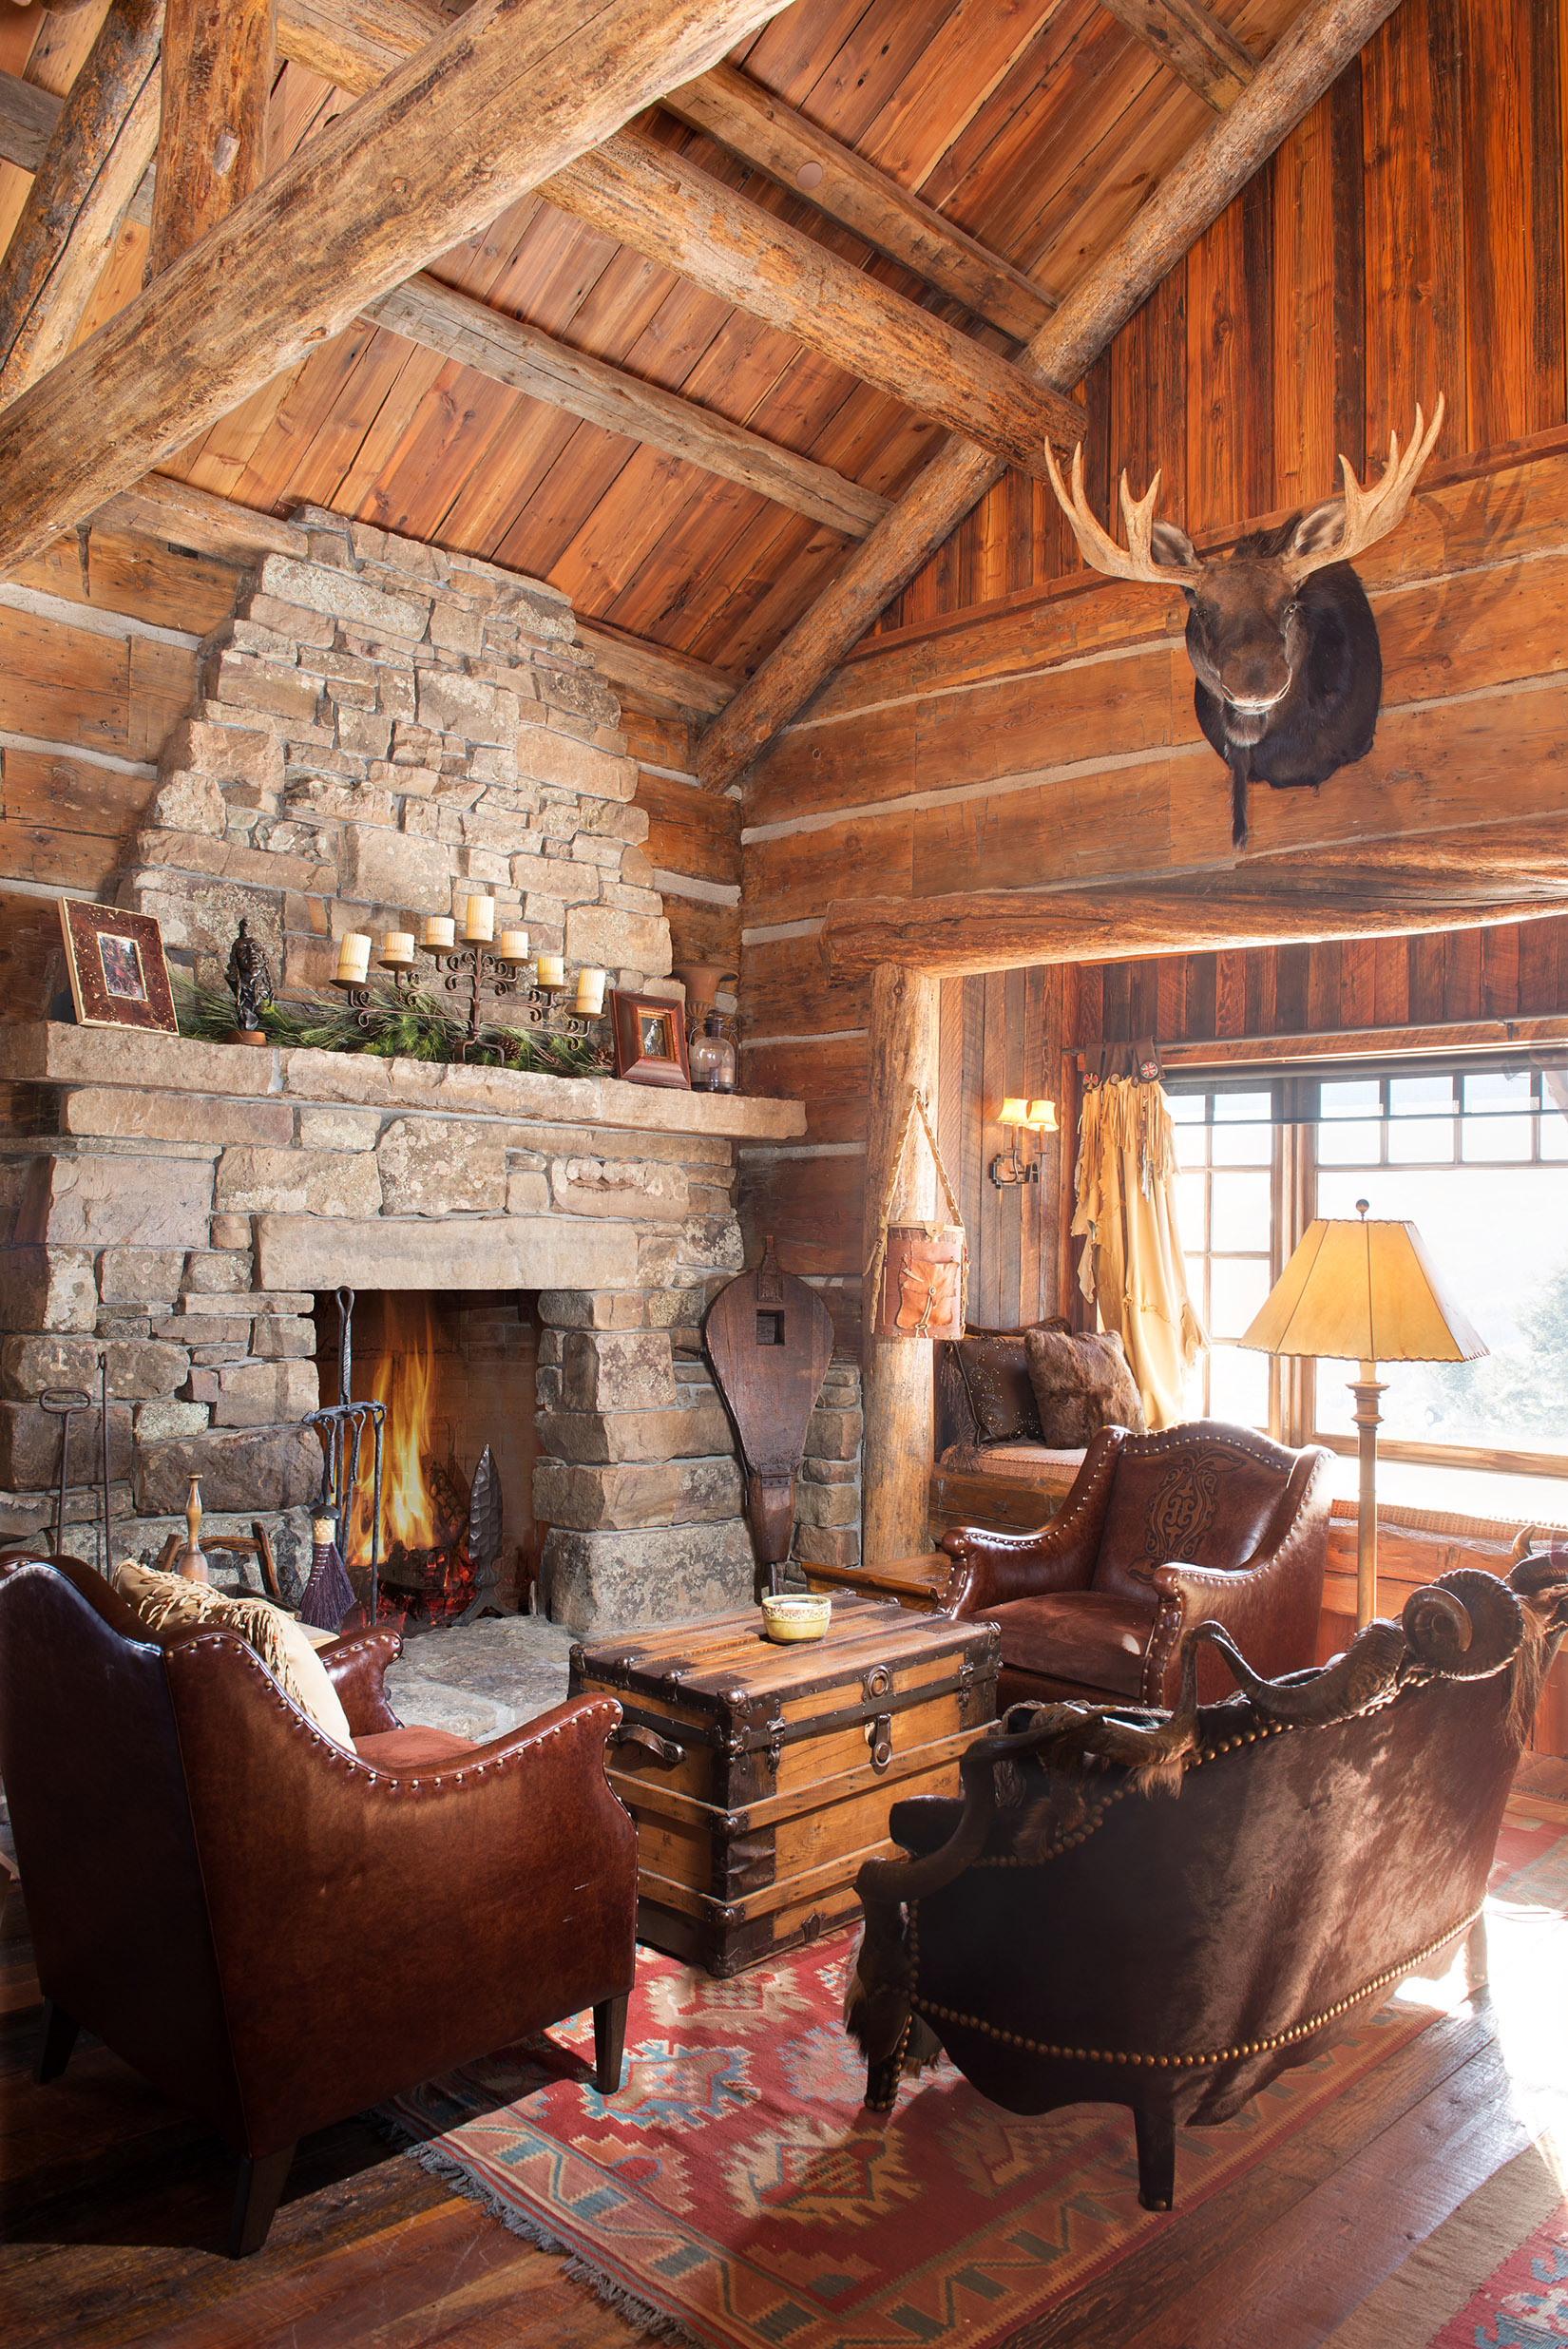 The rustic architecture is so cozy in this home. I could definitely sit next to this fireplace and enjoy a nice warm beverage for a long time! Located at  Yellowstone Club .